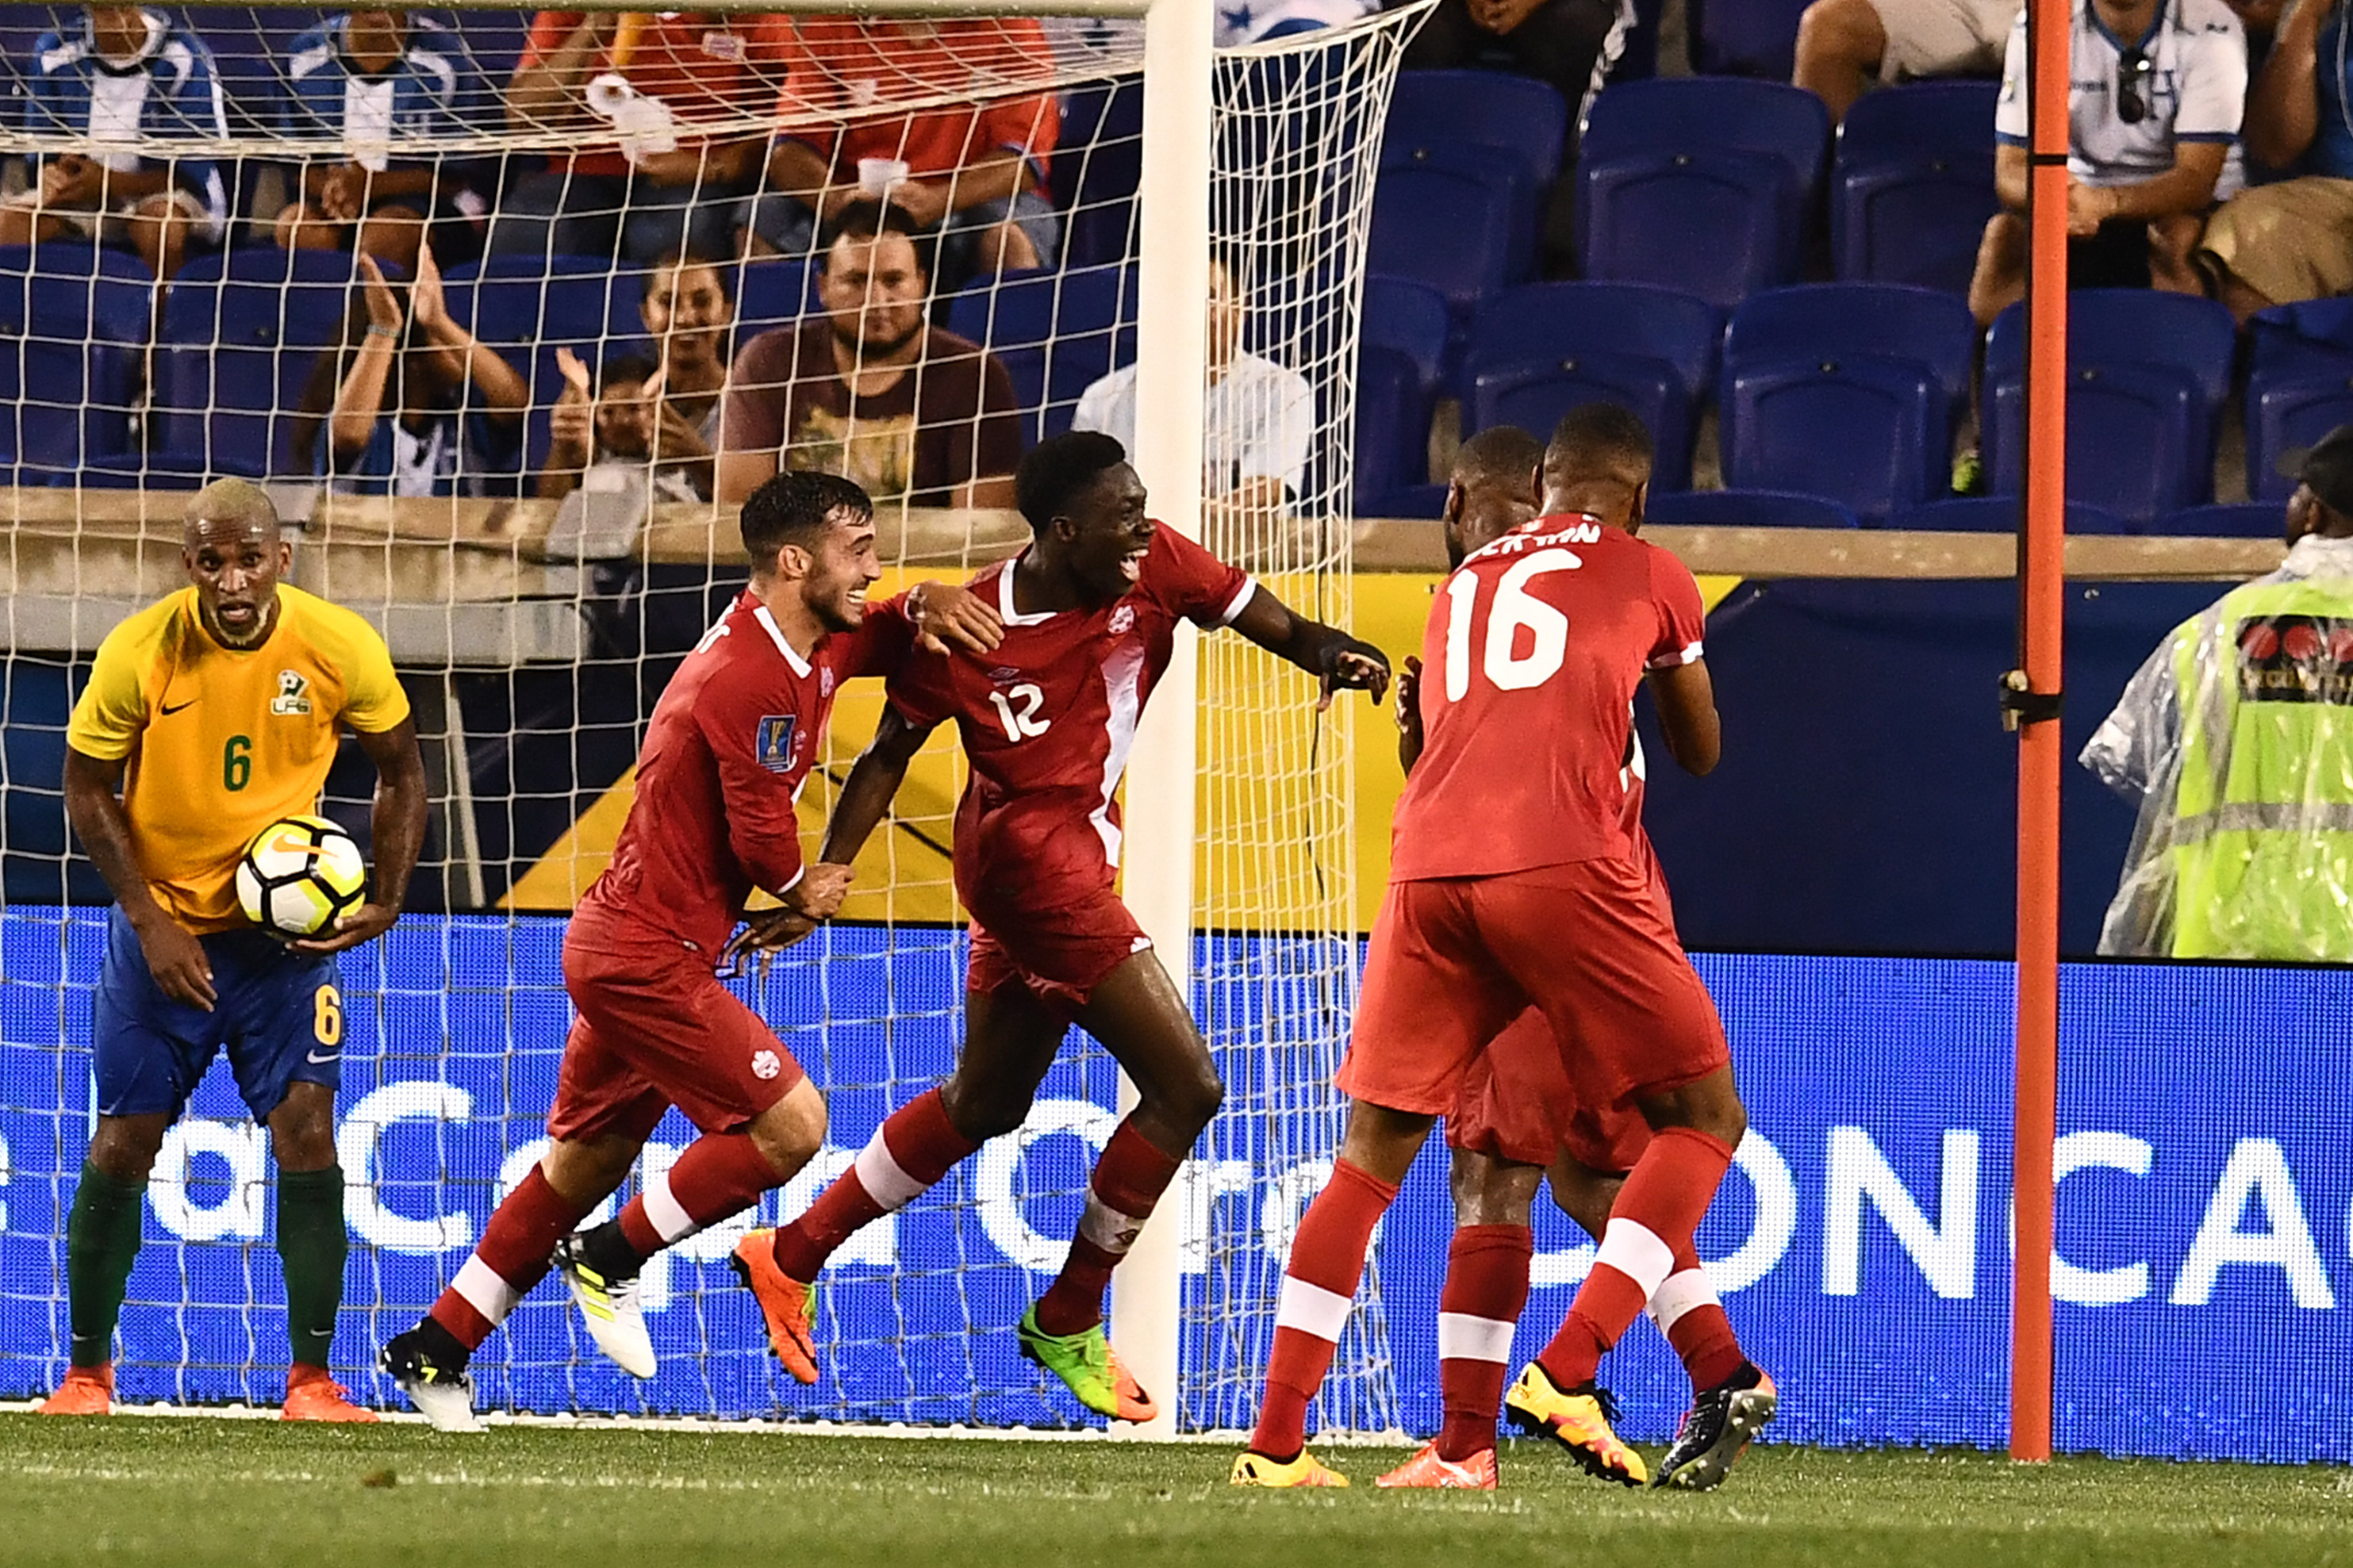 Alphonso Davies' journey from Ghanaian refugee camp to Champions League winner